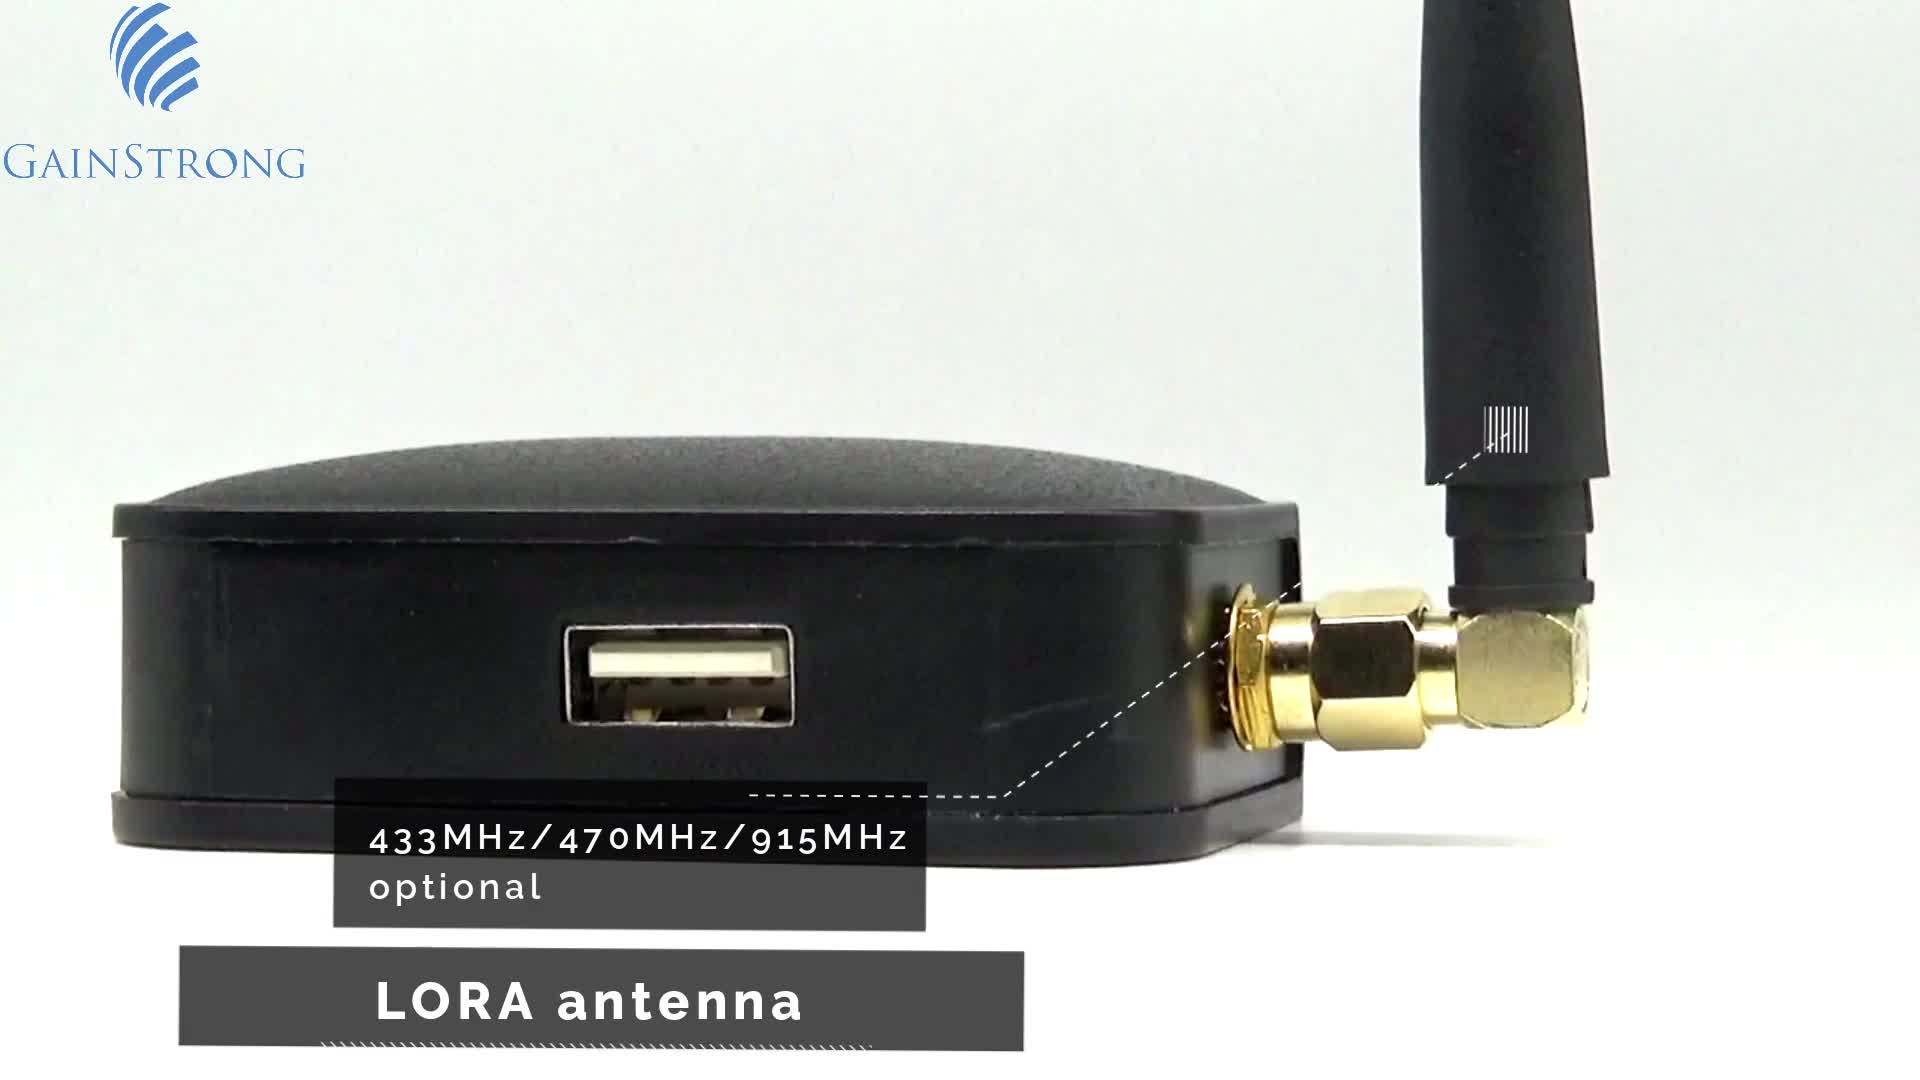 Newest 433mhz 80211 b/g/n 150Mbps 915mhz lora antenna